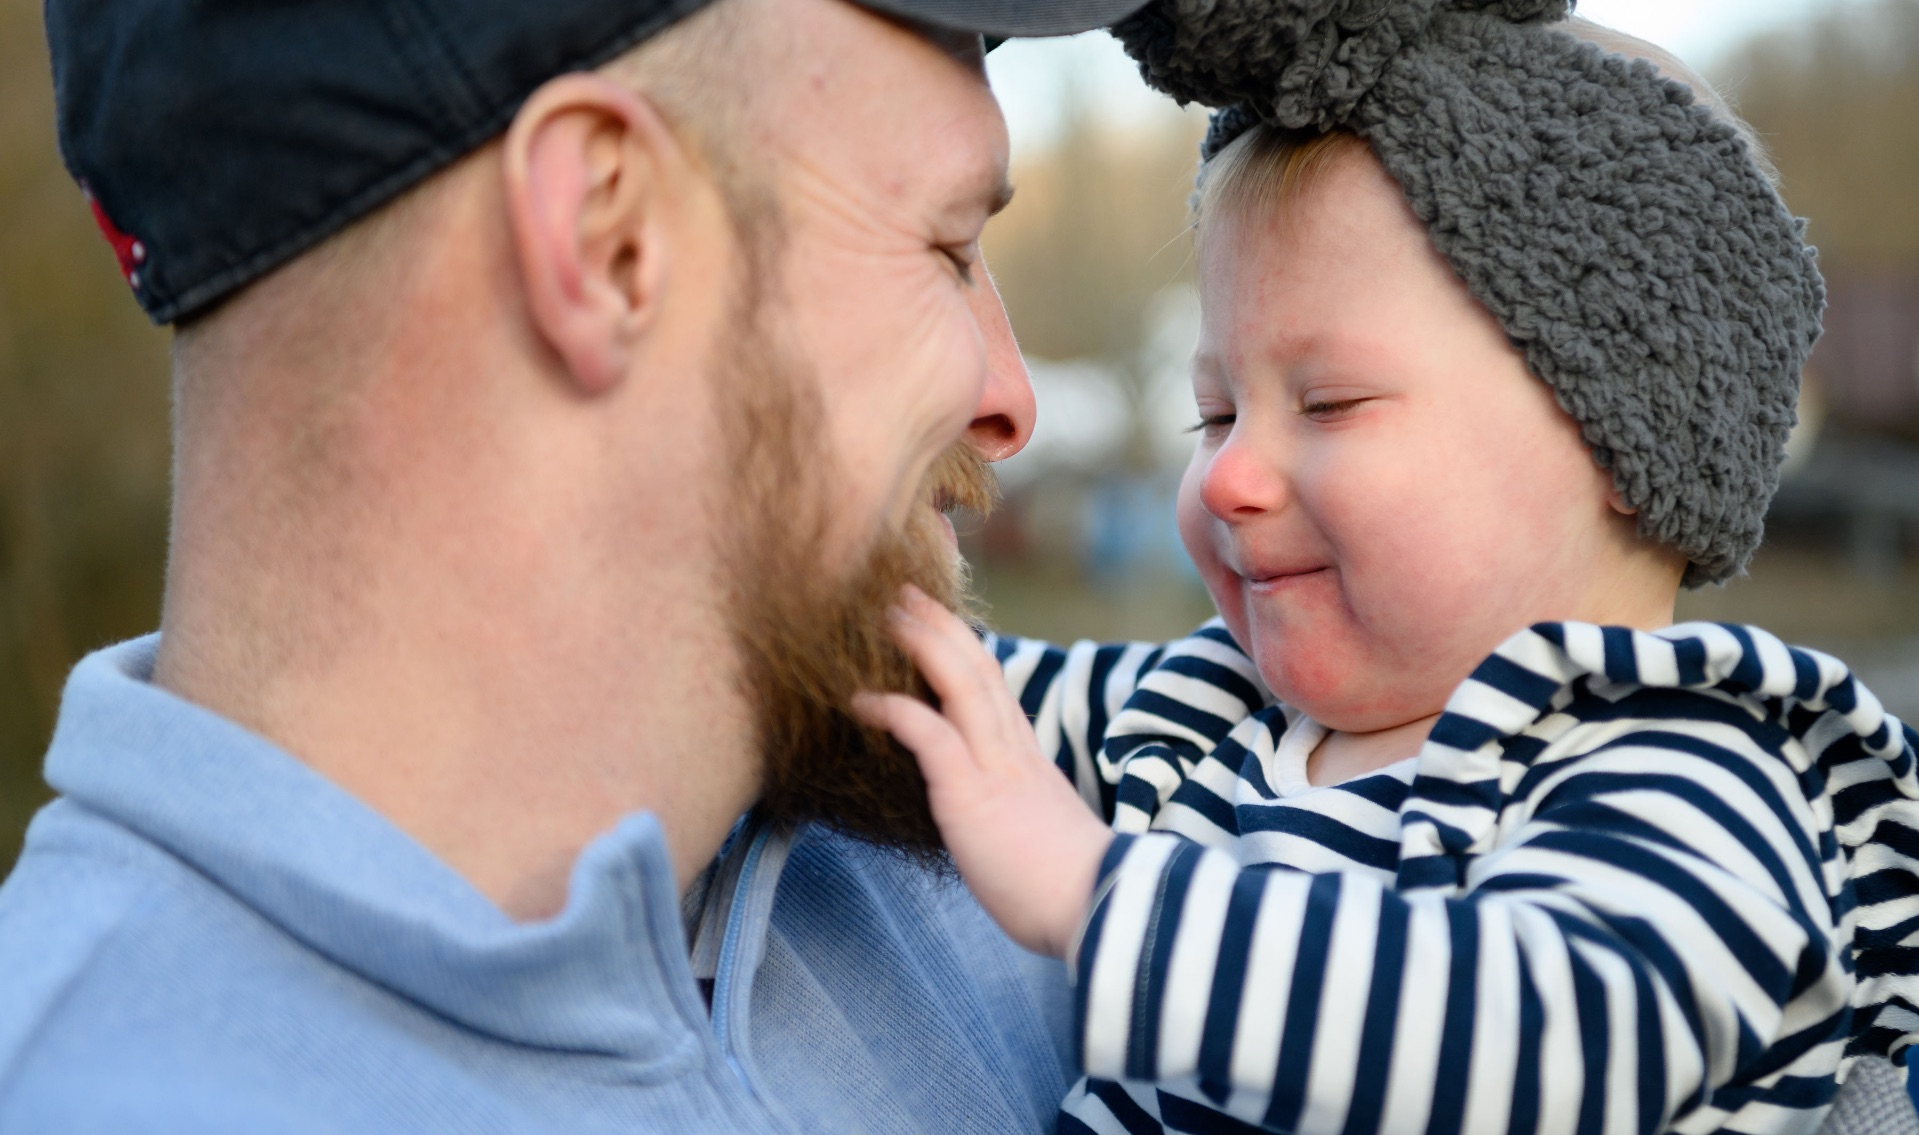 Timothy holds MaKenzie and smiles as she grins at him and touches his beard.